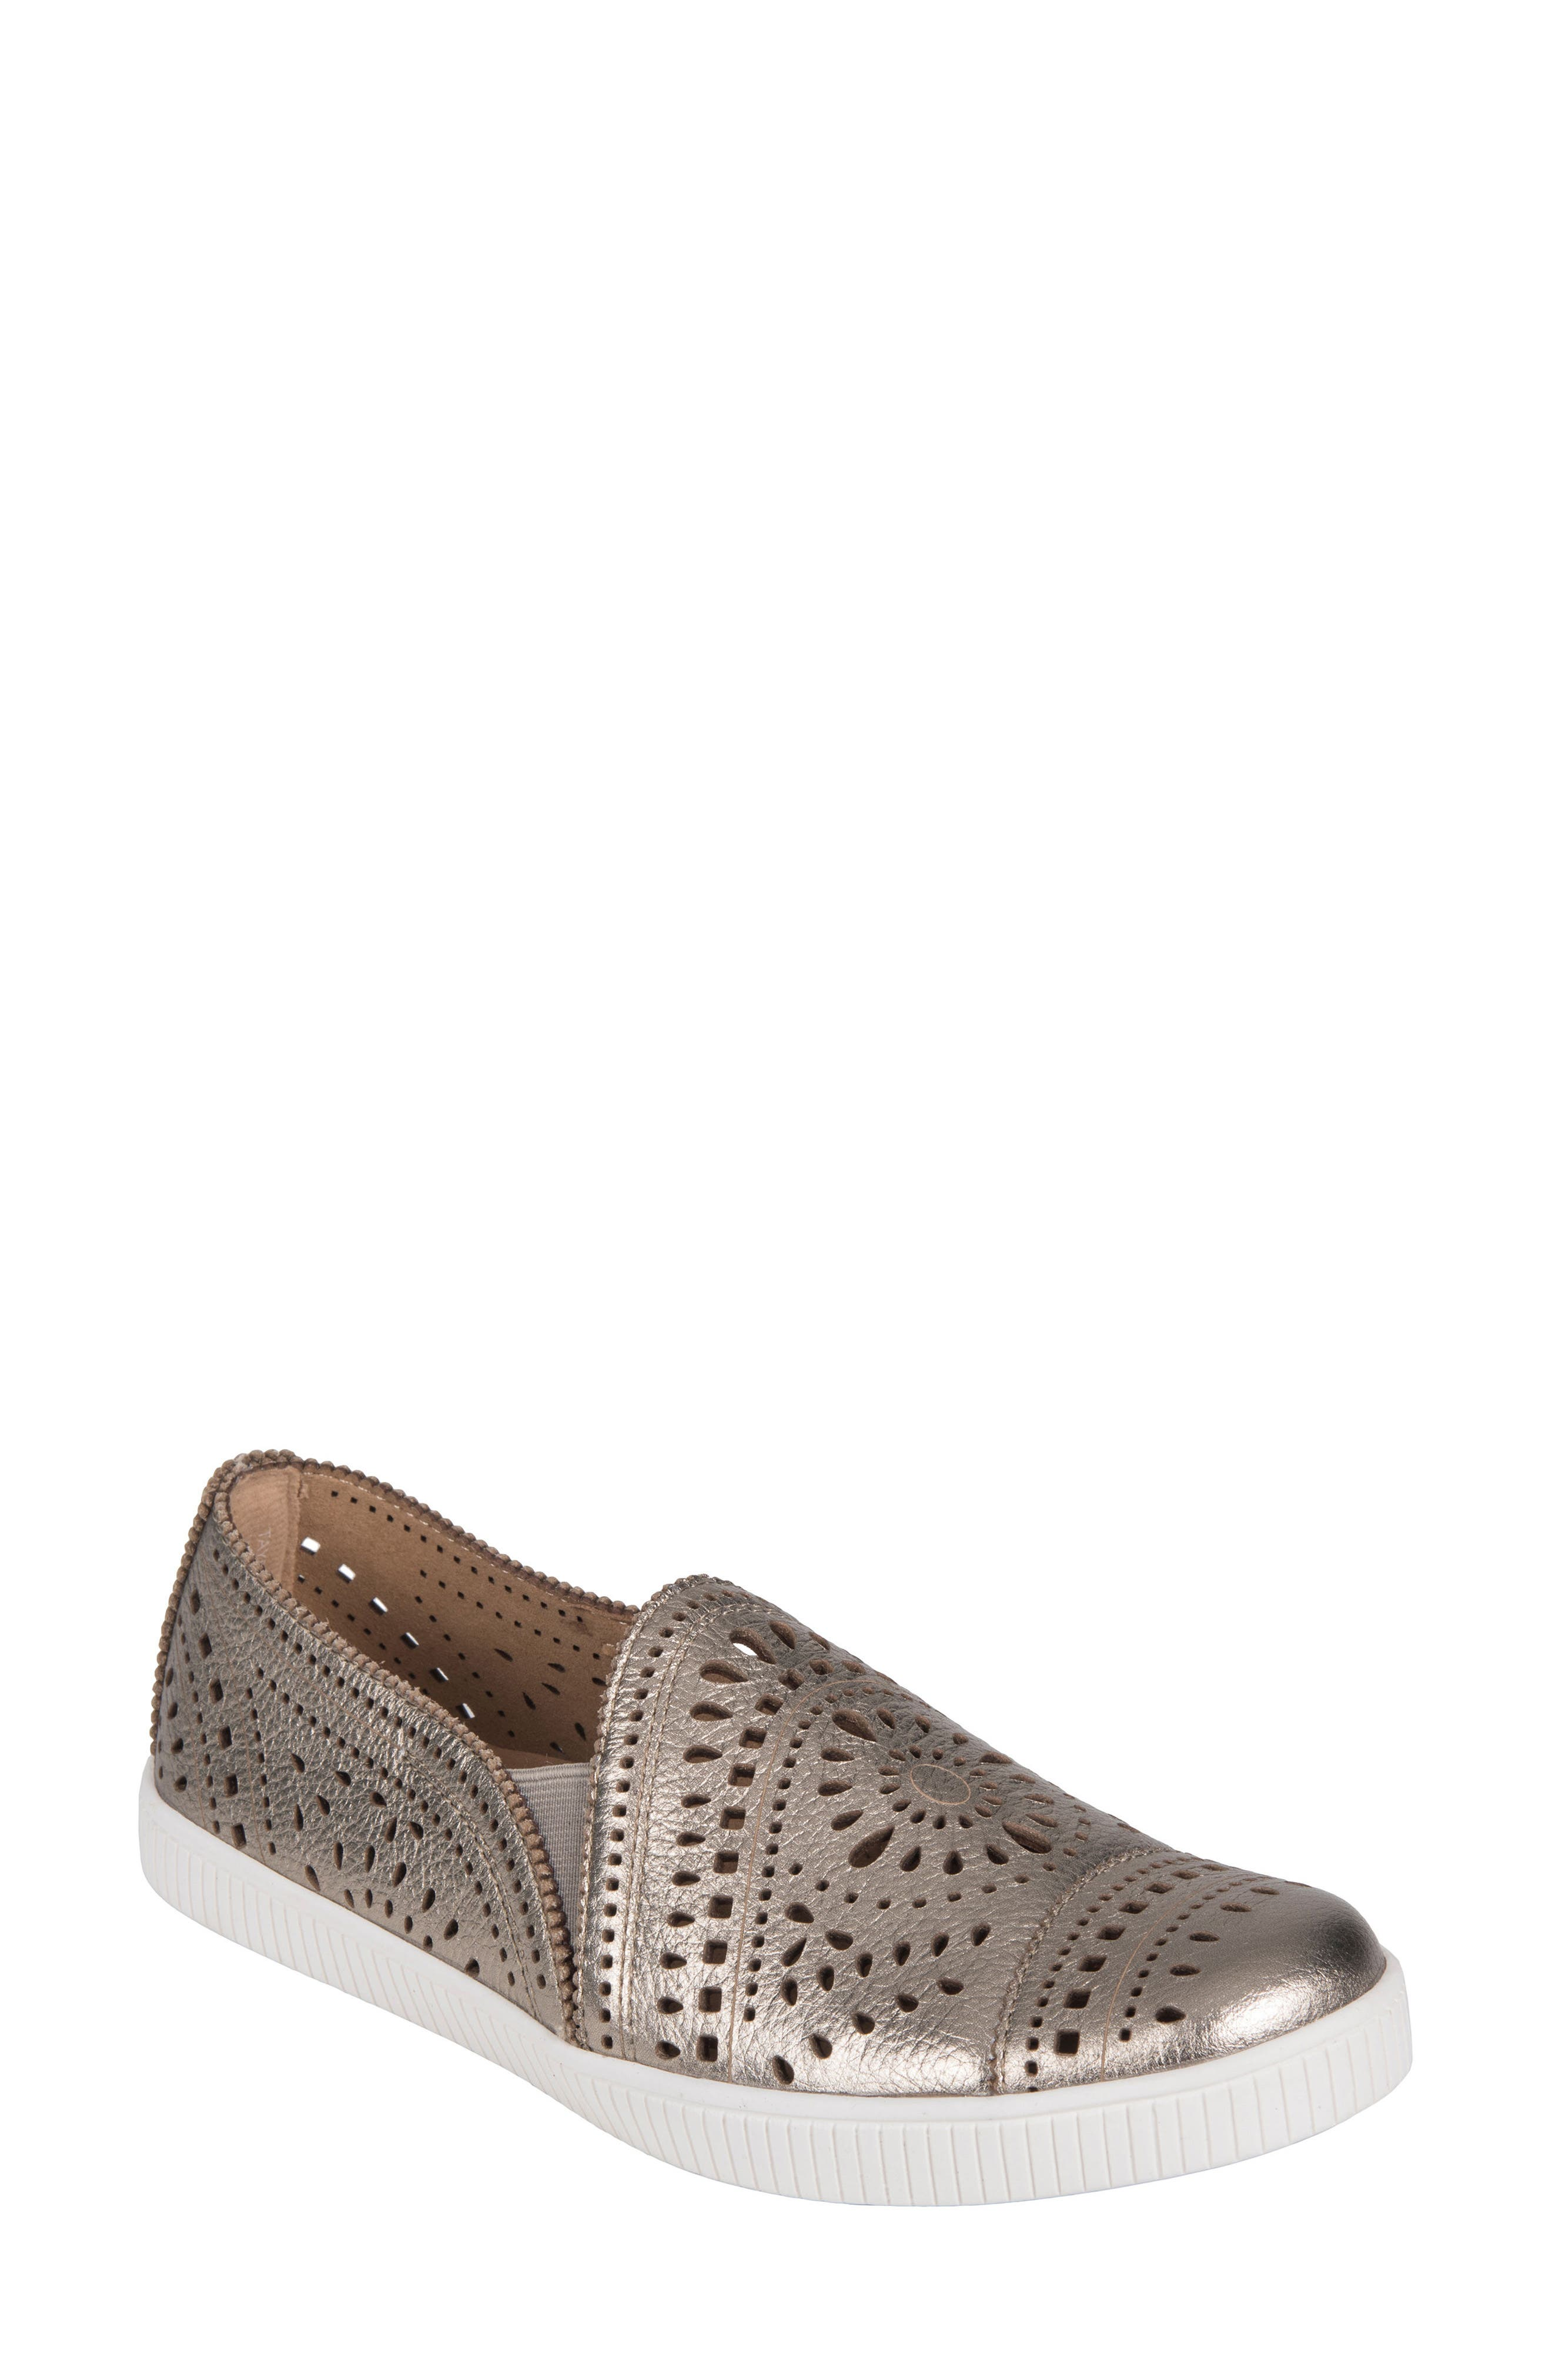 Tayberry Perforated Slip-On Sneaker,                             Main thumbnail 4, color,